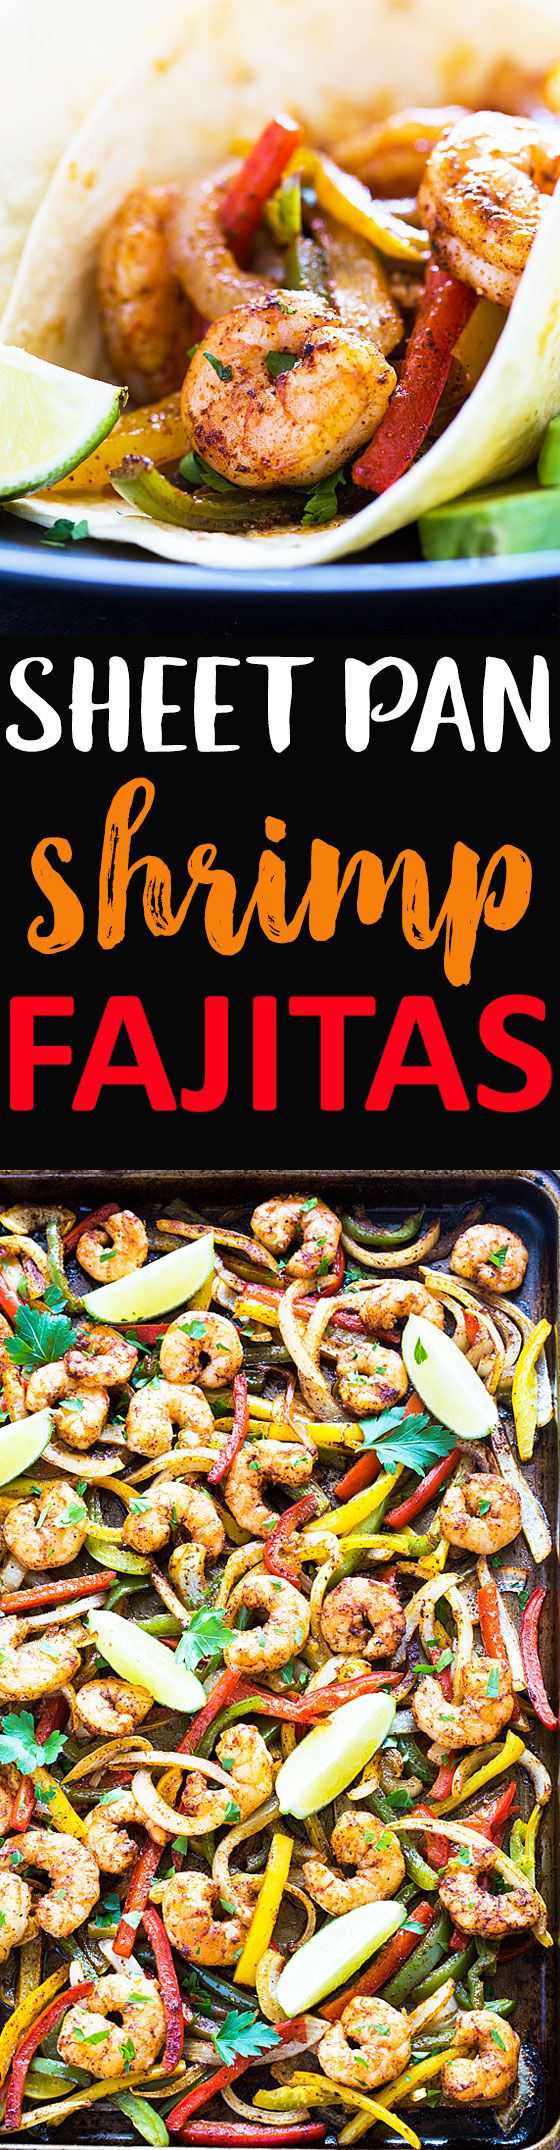 Sheet Pan Shrimp Fajitas | The Blond Cook